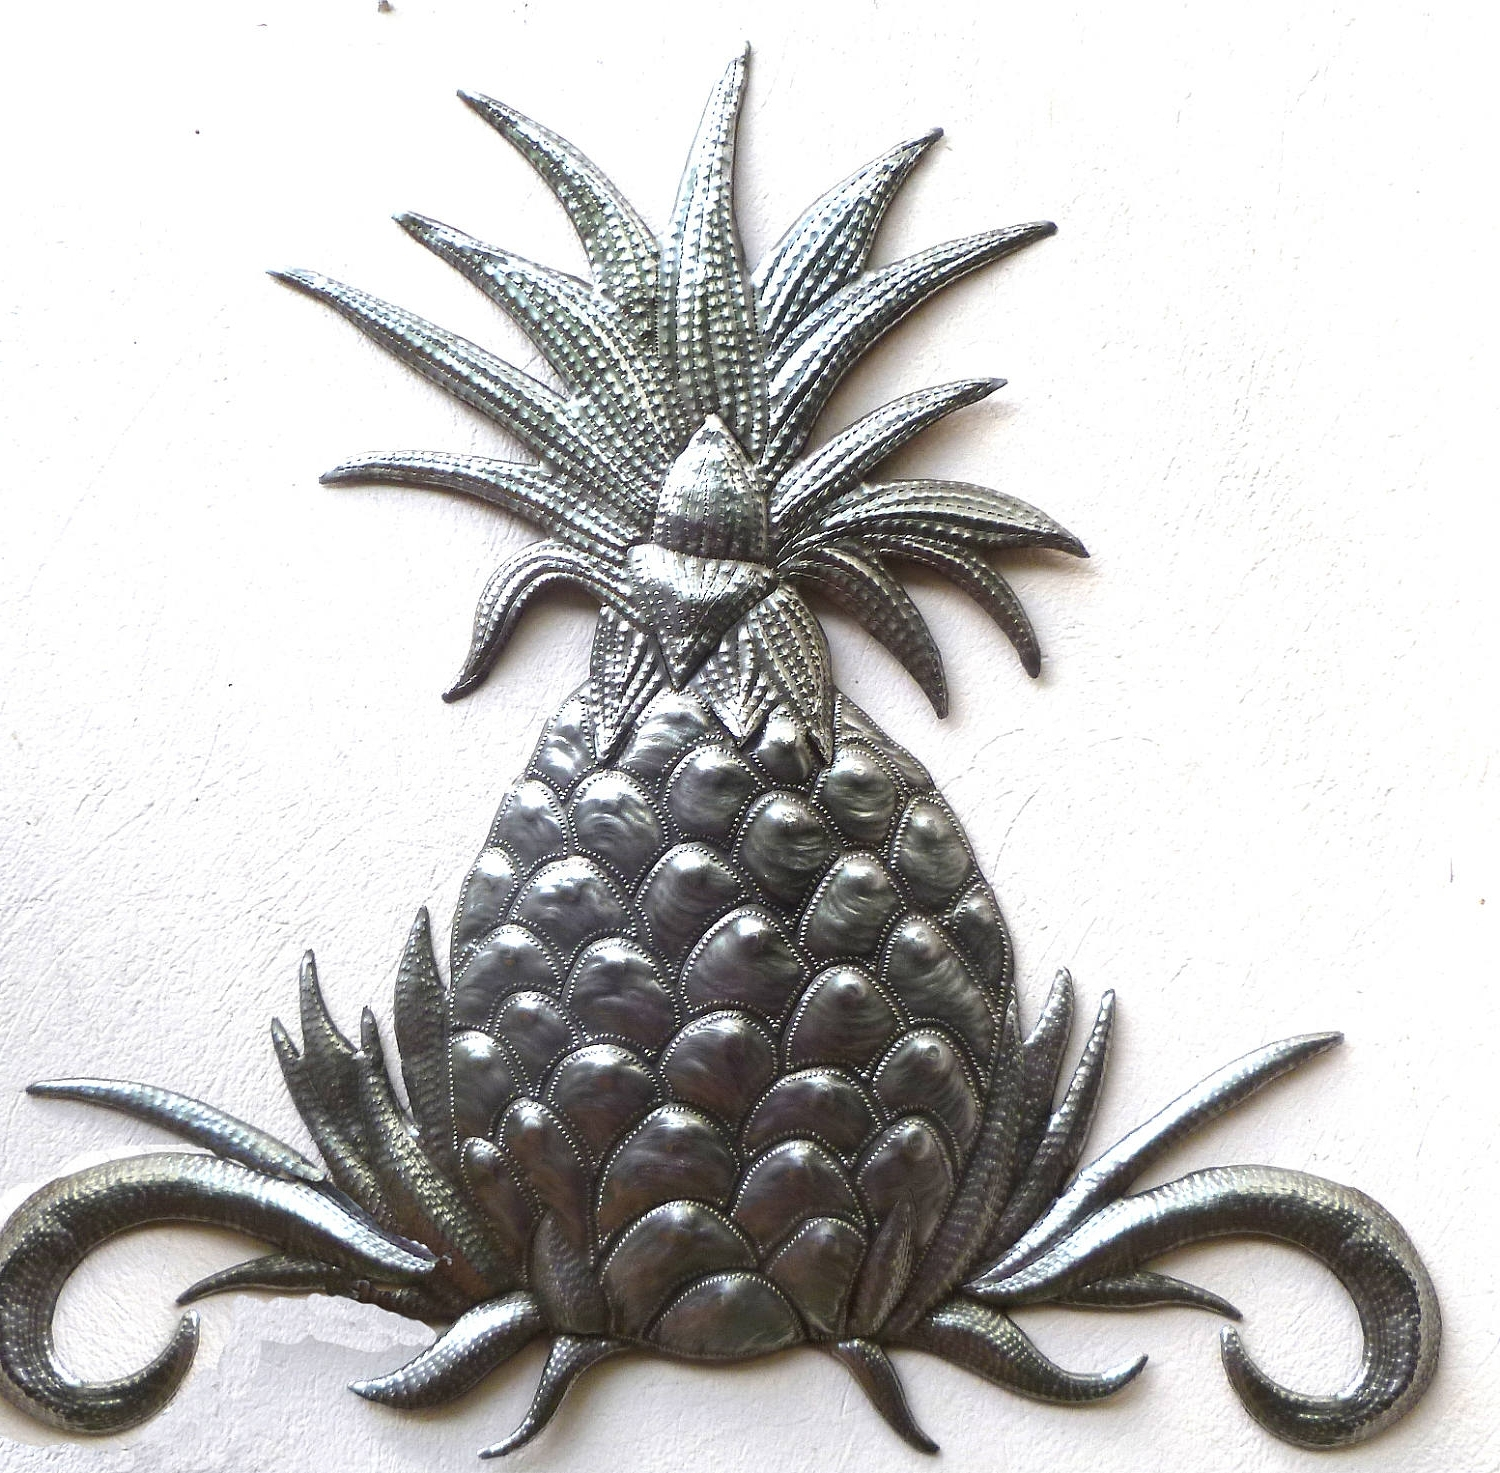 Metal Wall Decor – Pineapple Wall Art, Haitian Art, Metal Wall With Current Pineapple Metal Wall Art (View 8 of 15)